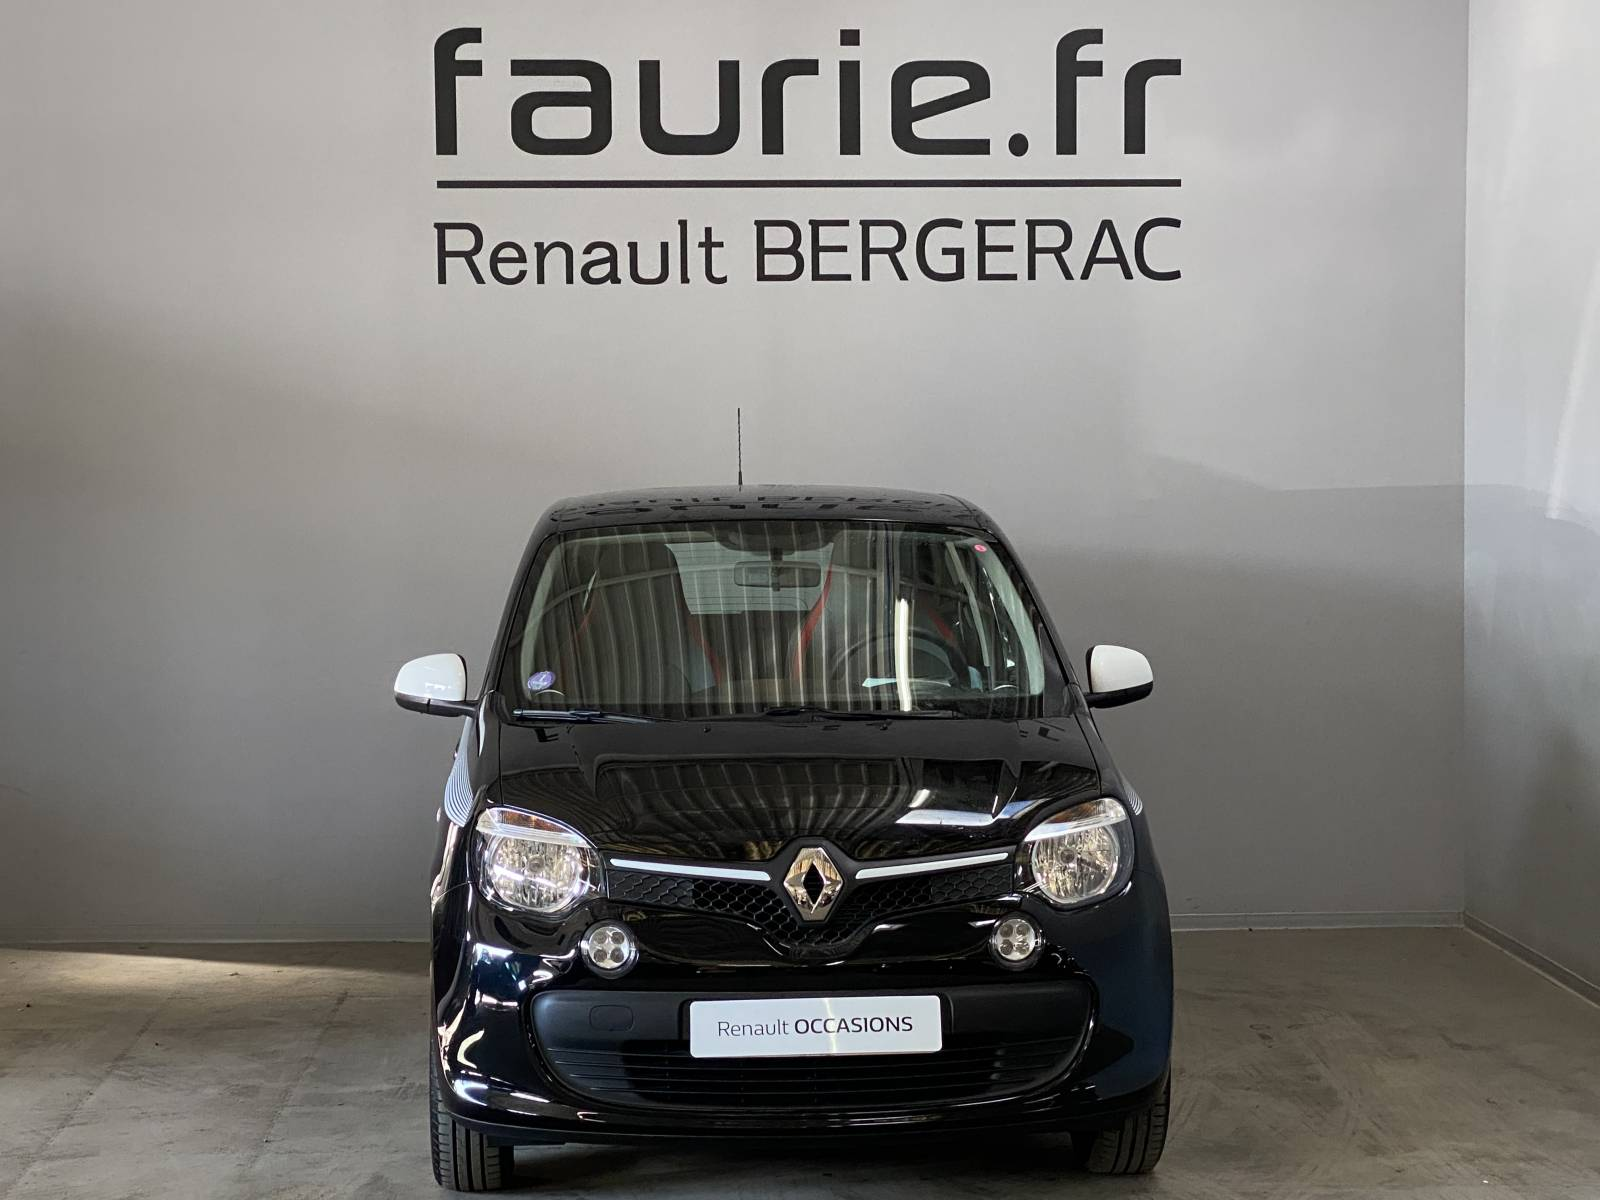 RENAULT Twingo III 0.9 TCe 90 Energy - véhicule d'occasion - Site Internet Faurie - Renault - Faurie Auto Bergerac - 24100 - Bergerac - 2